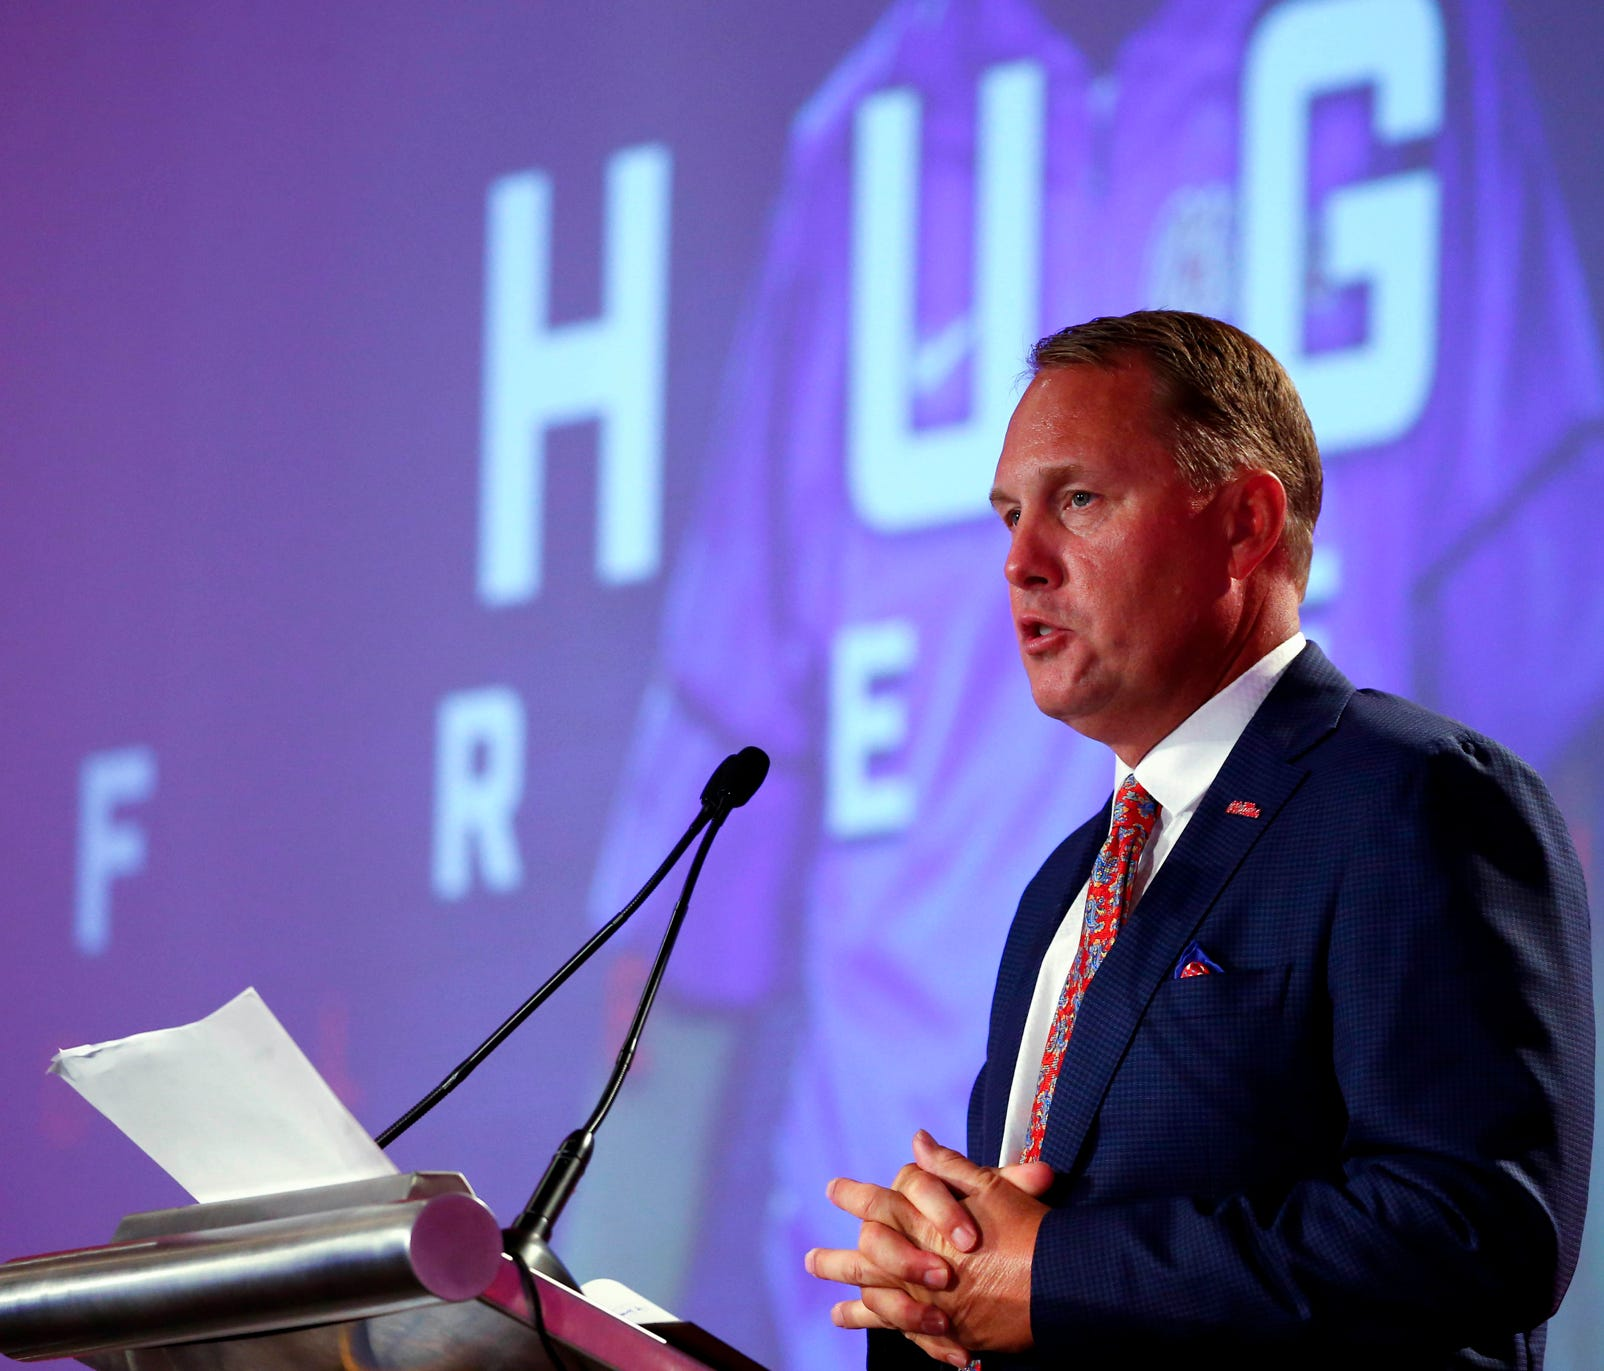 Mississippi NCAA college football coach Hugh Freeze speaks during the Southeastern Conference's annual media gathering July 13, 2017 in Hoover, Ala.